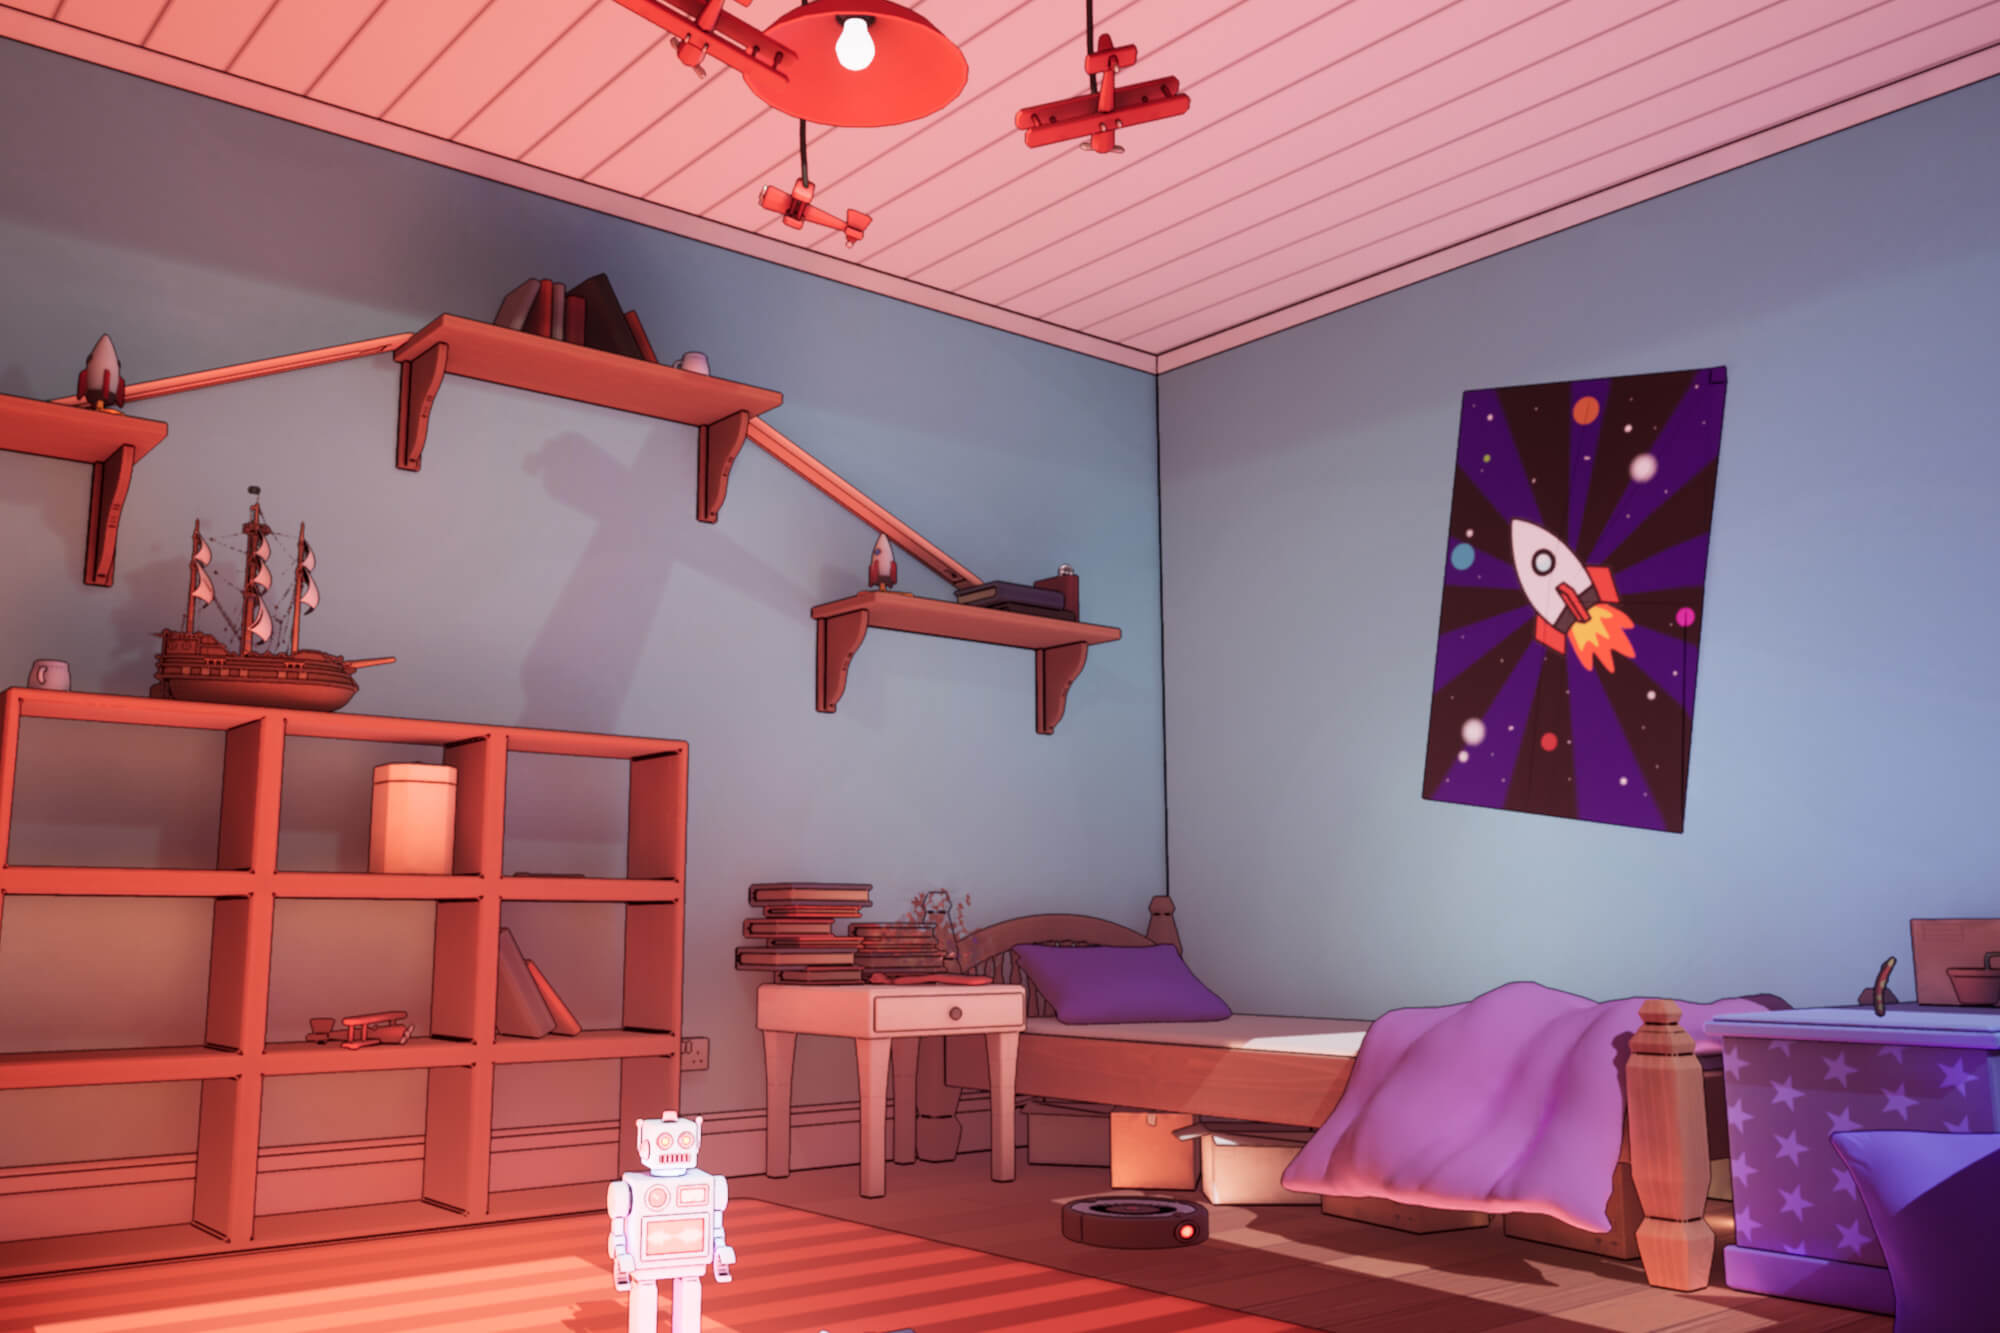 a child's bedroom with a space rocket poster, model planes, a toy robot and a model ship